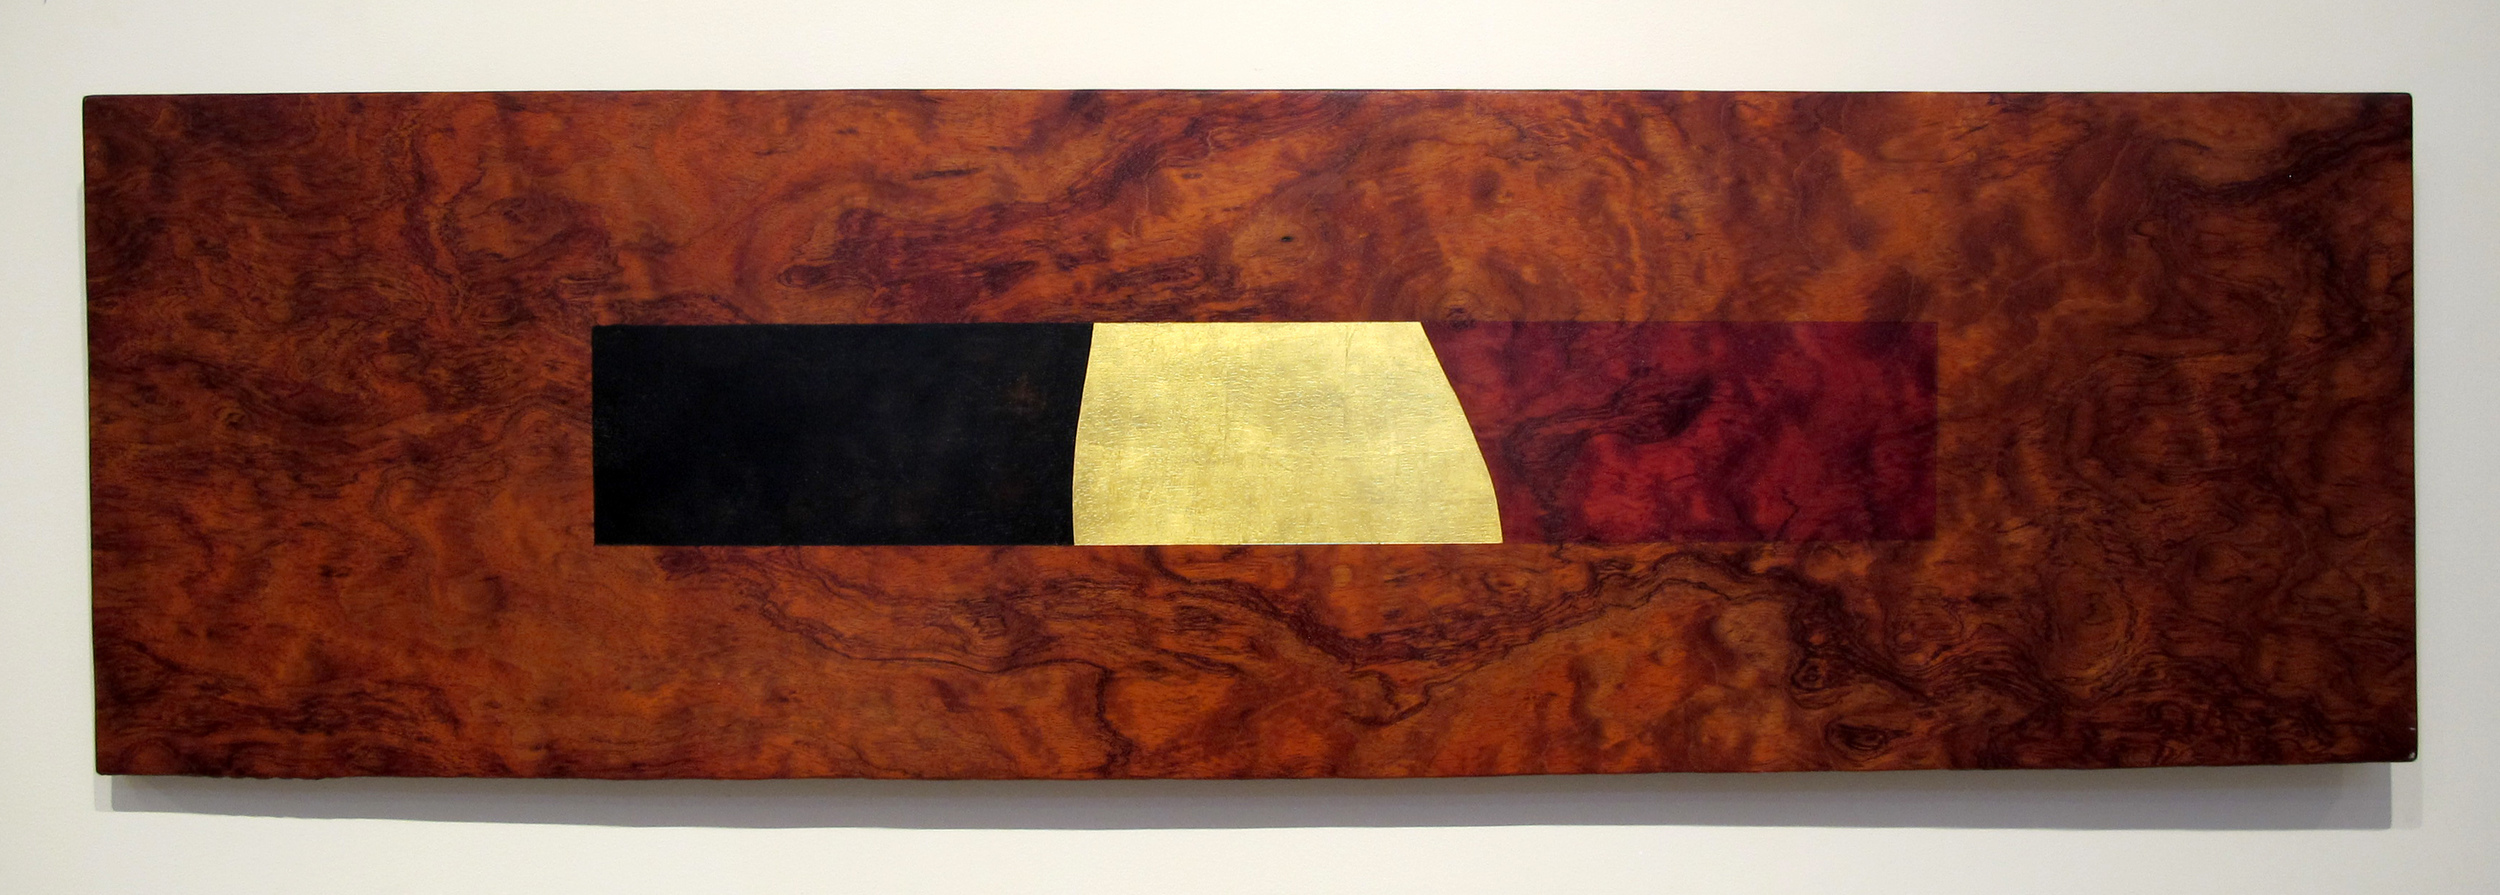 "River Crossing  Jeffrey Brosk JB149 Quilted Bubinga, Red & Black Stain, Gold Leaf 16"" x 55"" x 1.5"""